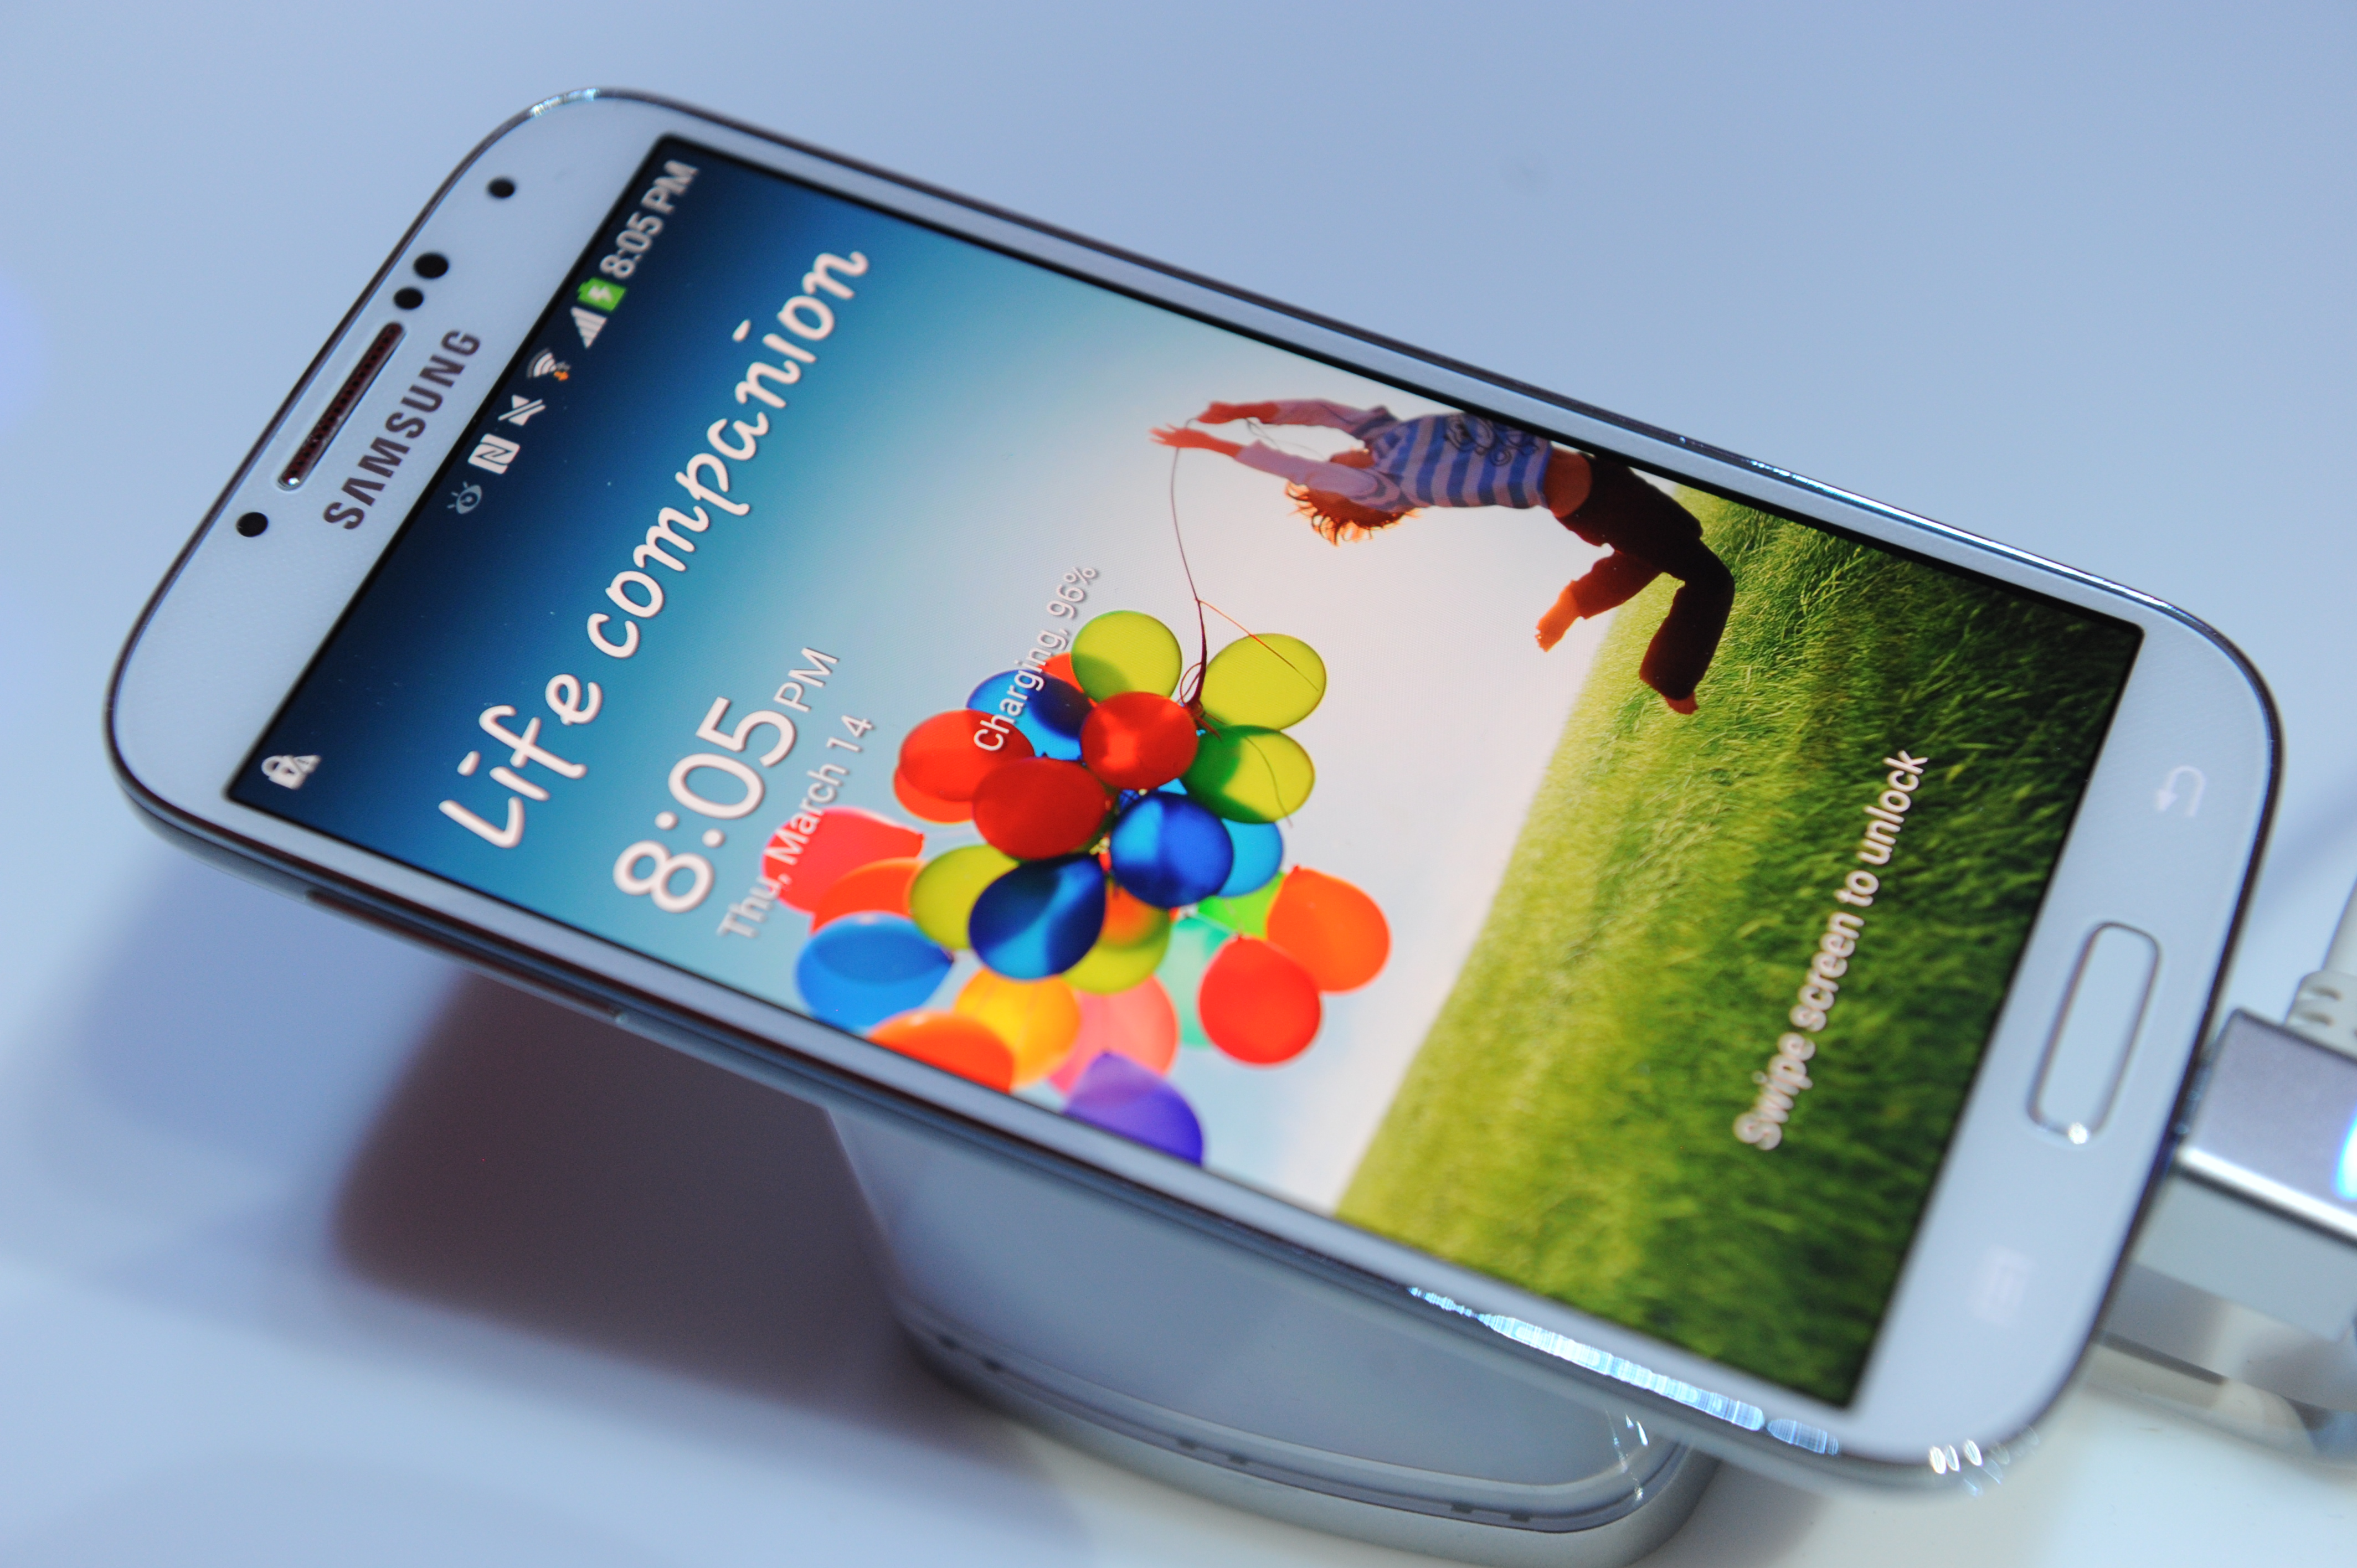 samsung 39 s galaxy s5 smartphone will reportedly launch by april. Black Bedroom Furniture Sets. Home Design Ideas